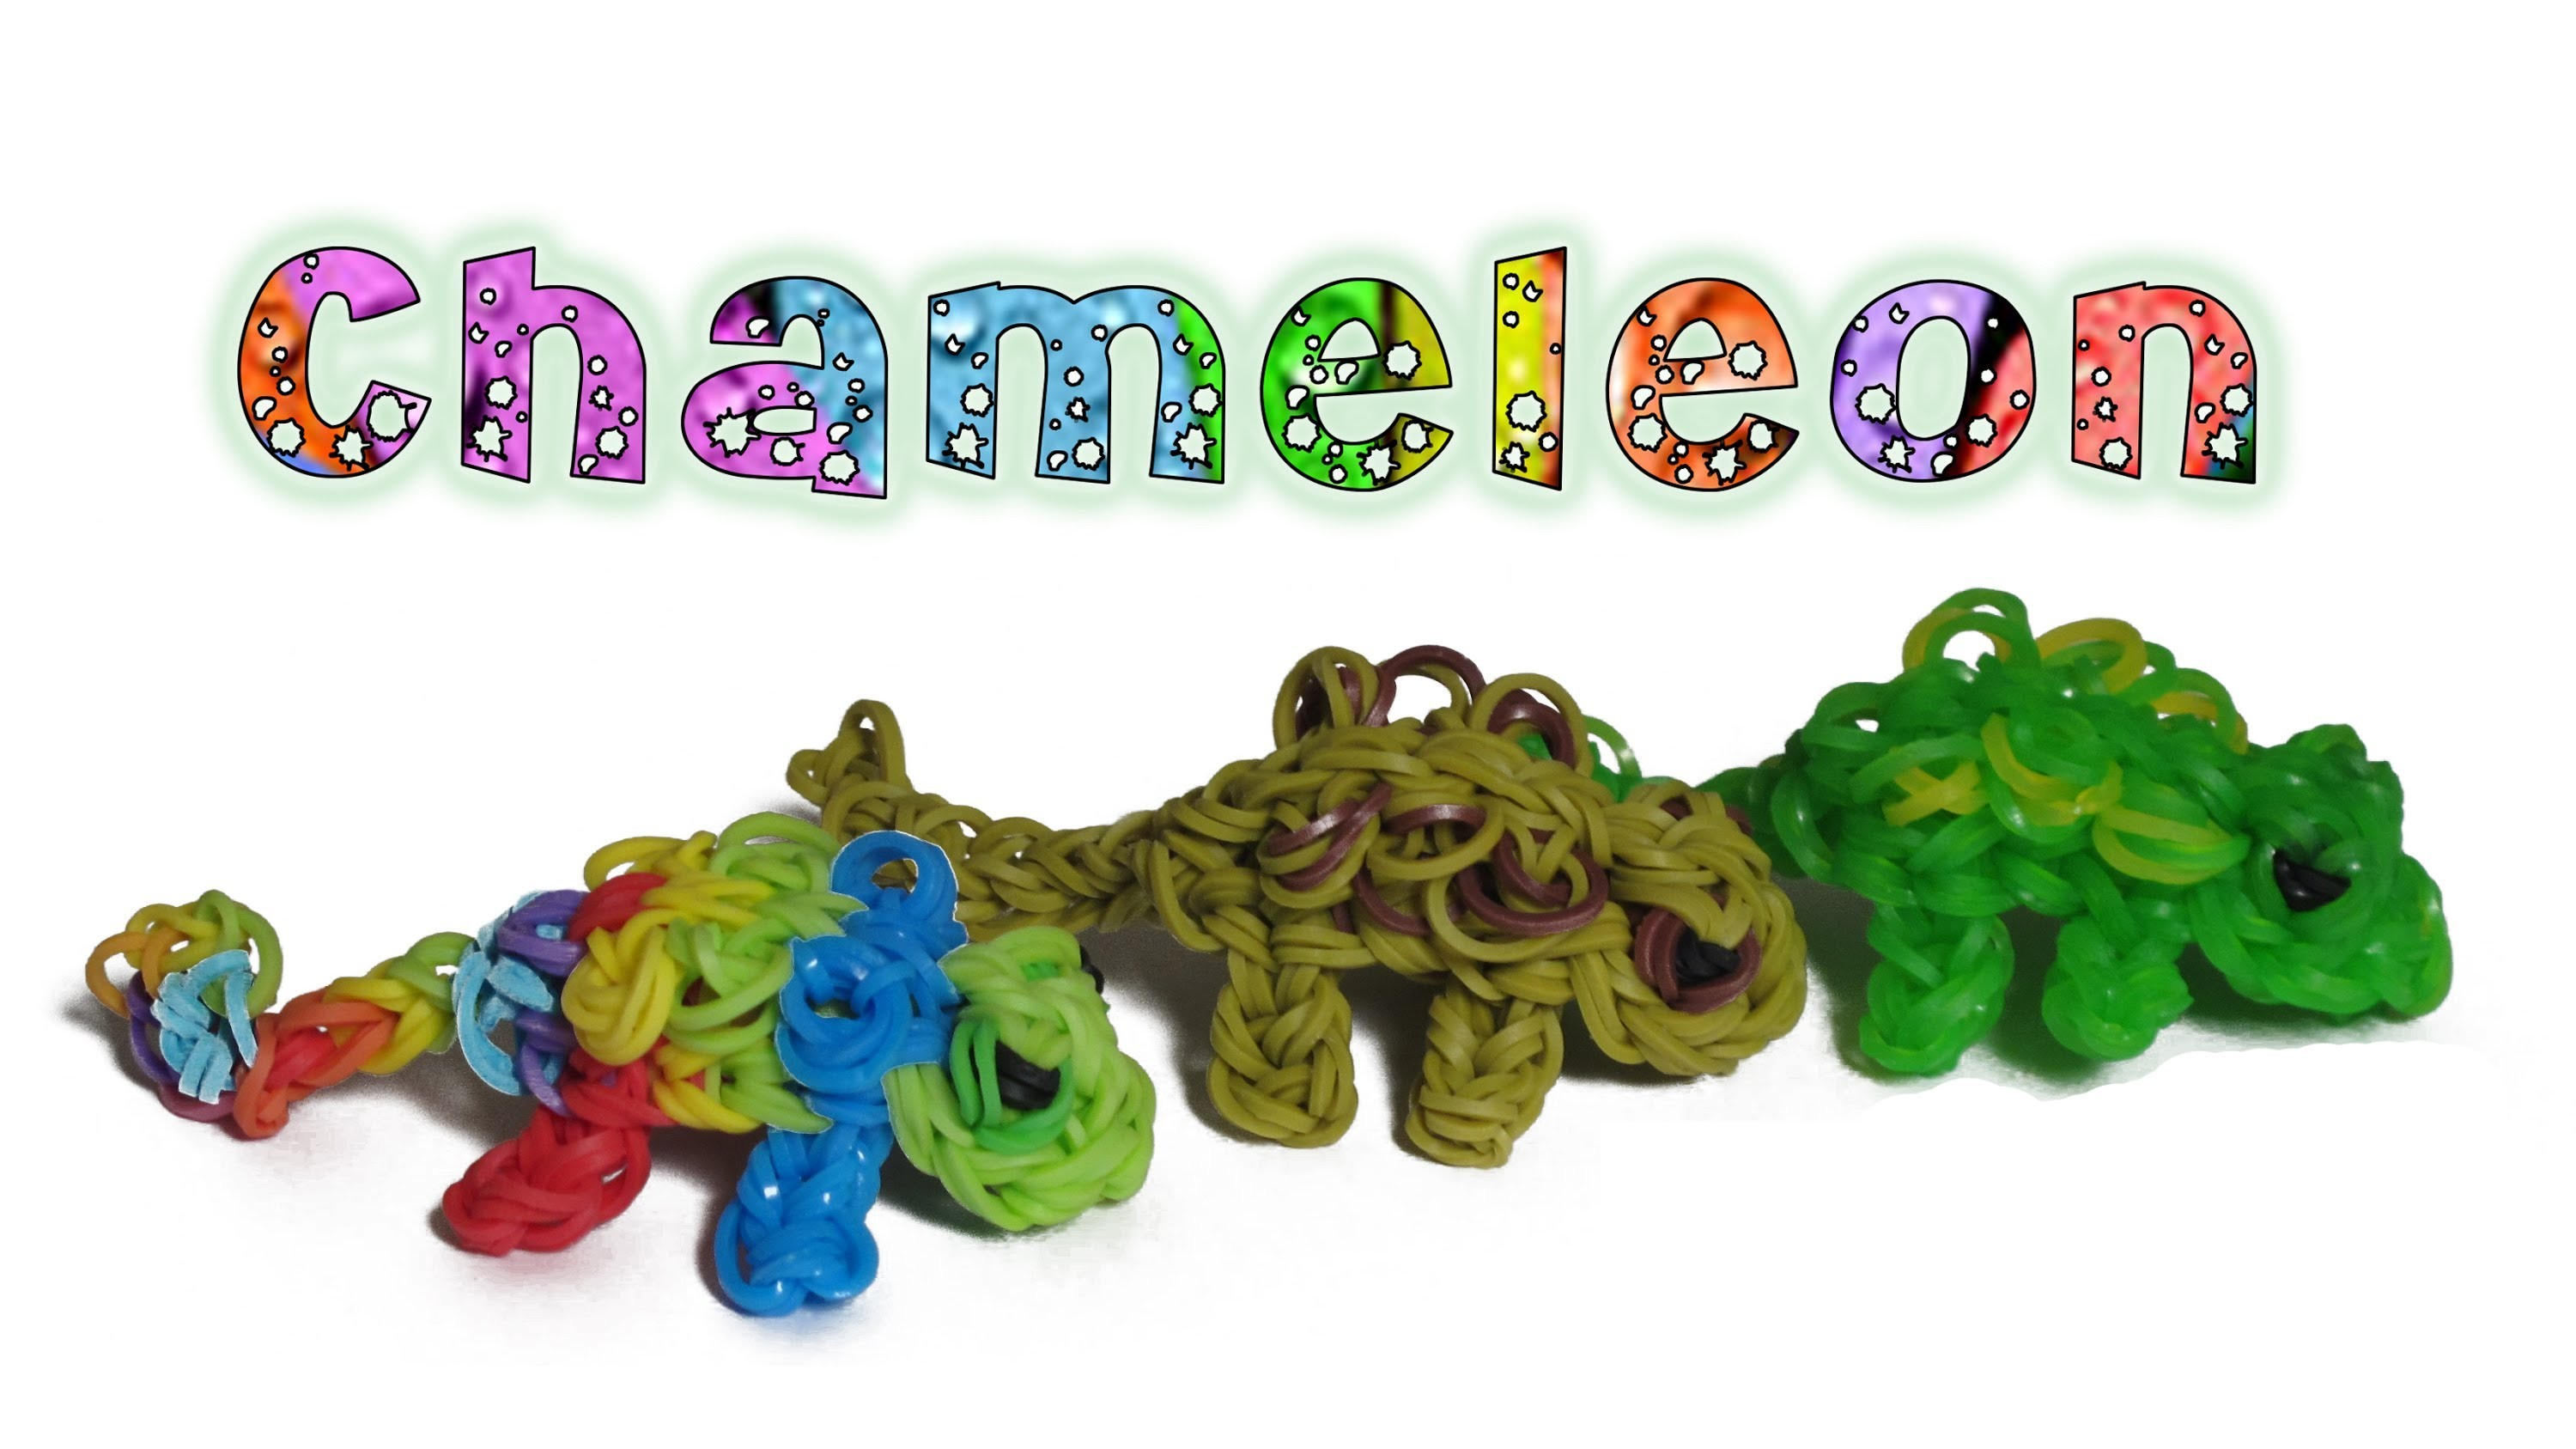 Rainbow Loom 3D Chameleon charm.Figure - How to - Animal Series